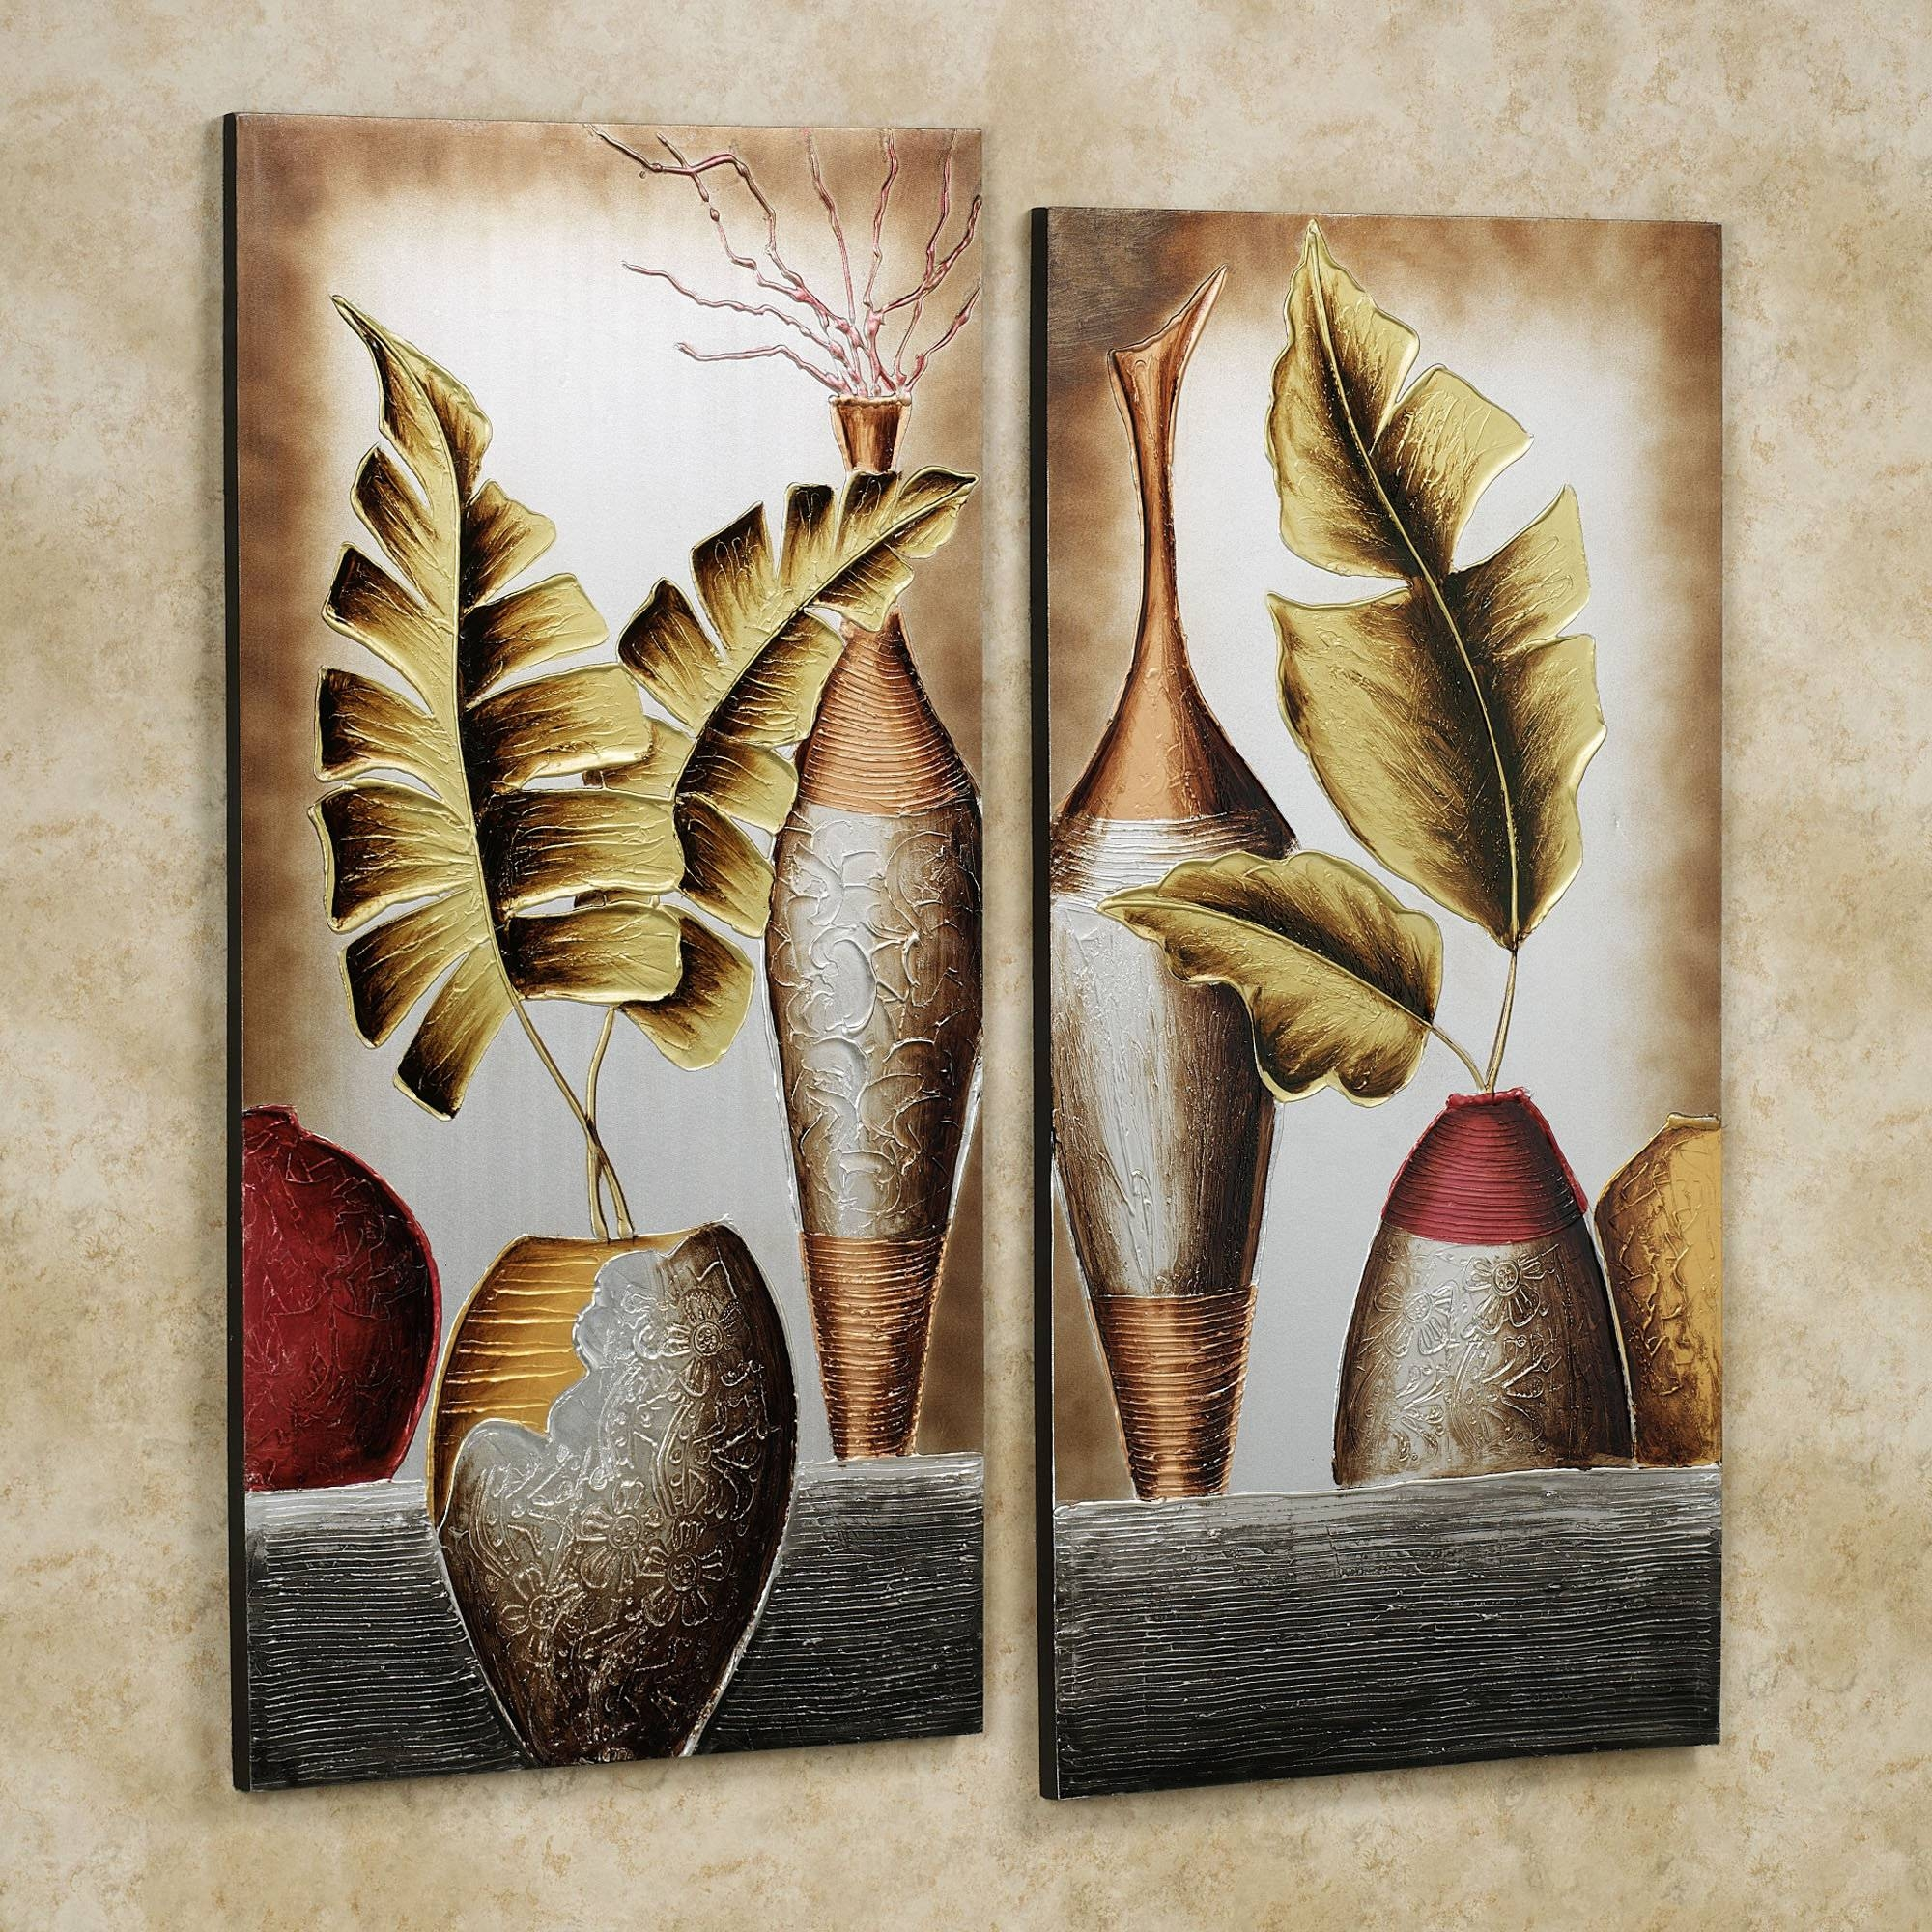 Wall Art Designs: Sensational High Quality Pictures Of Canvas Sets In Most Recent Cheap Wall Art Sets (View 18 of 20)